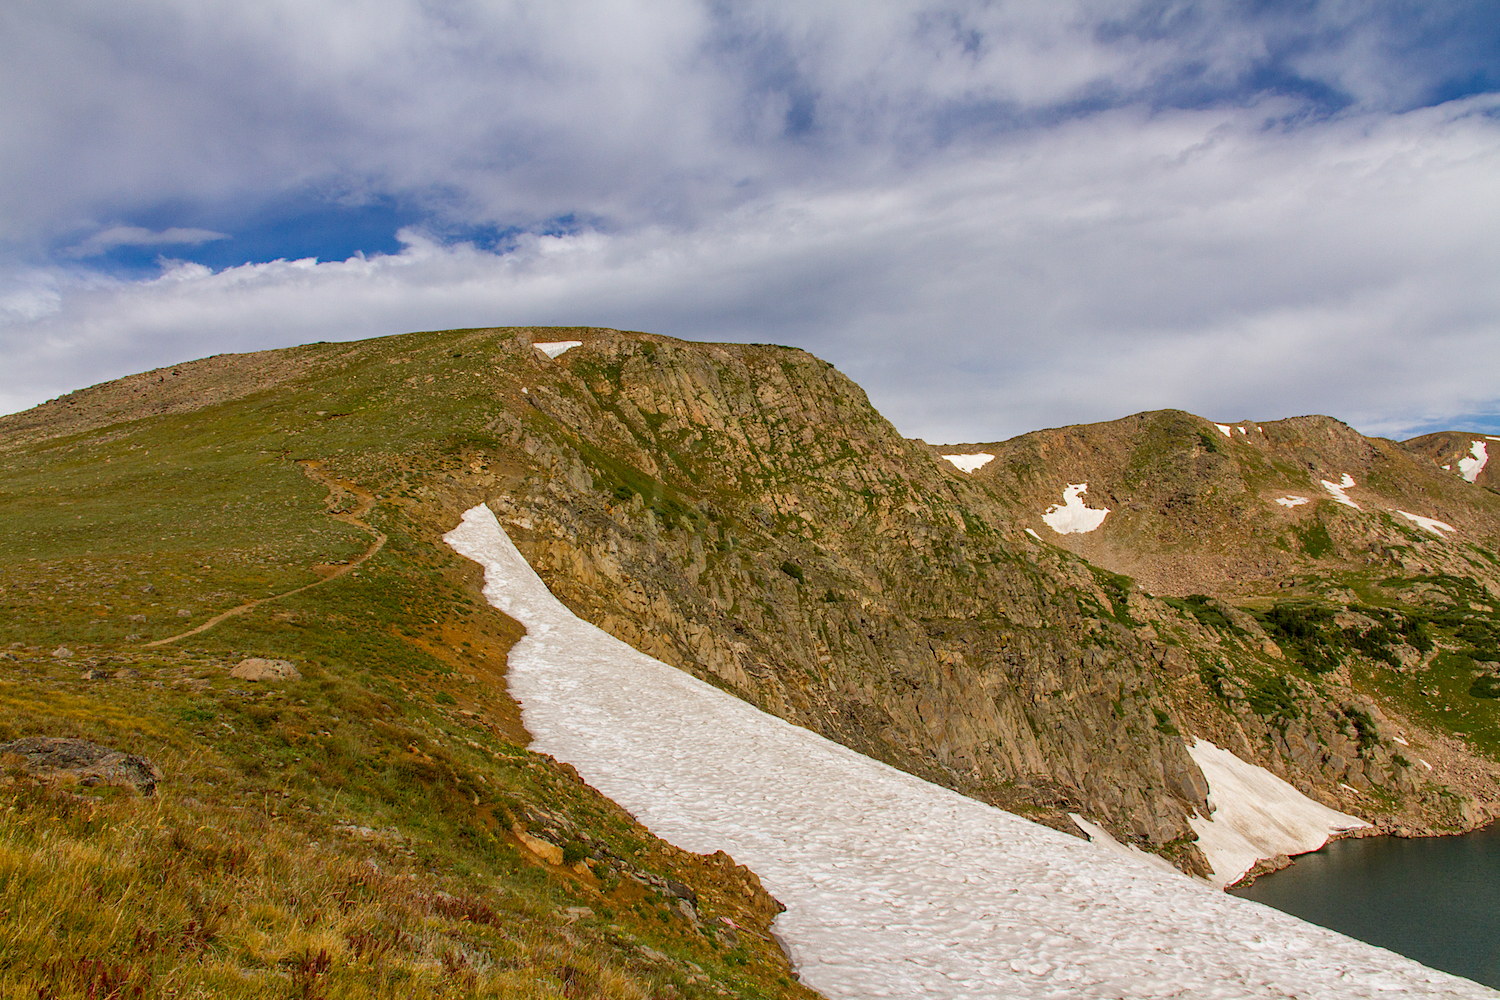 High Lonesome Trail above King Lake, Image # 9648